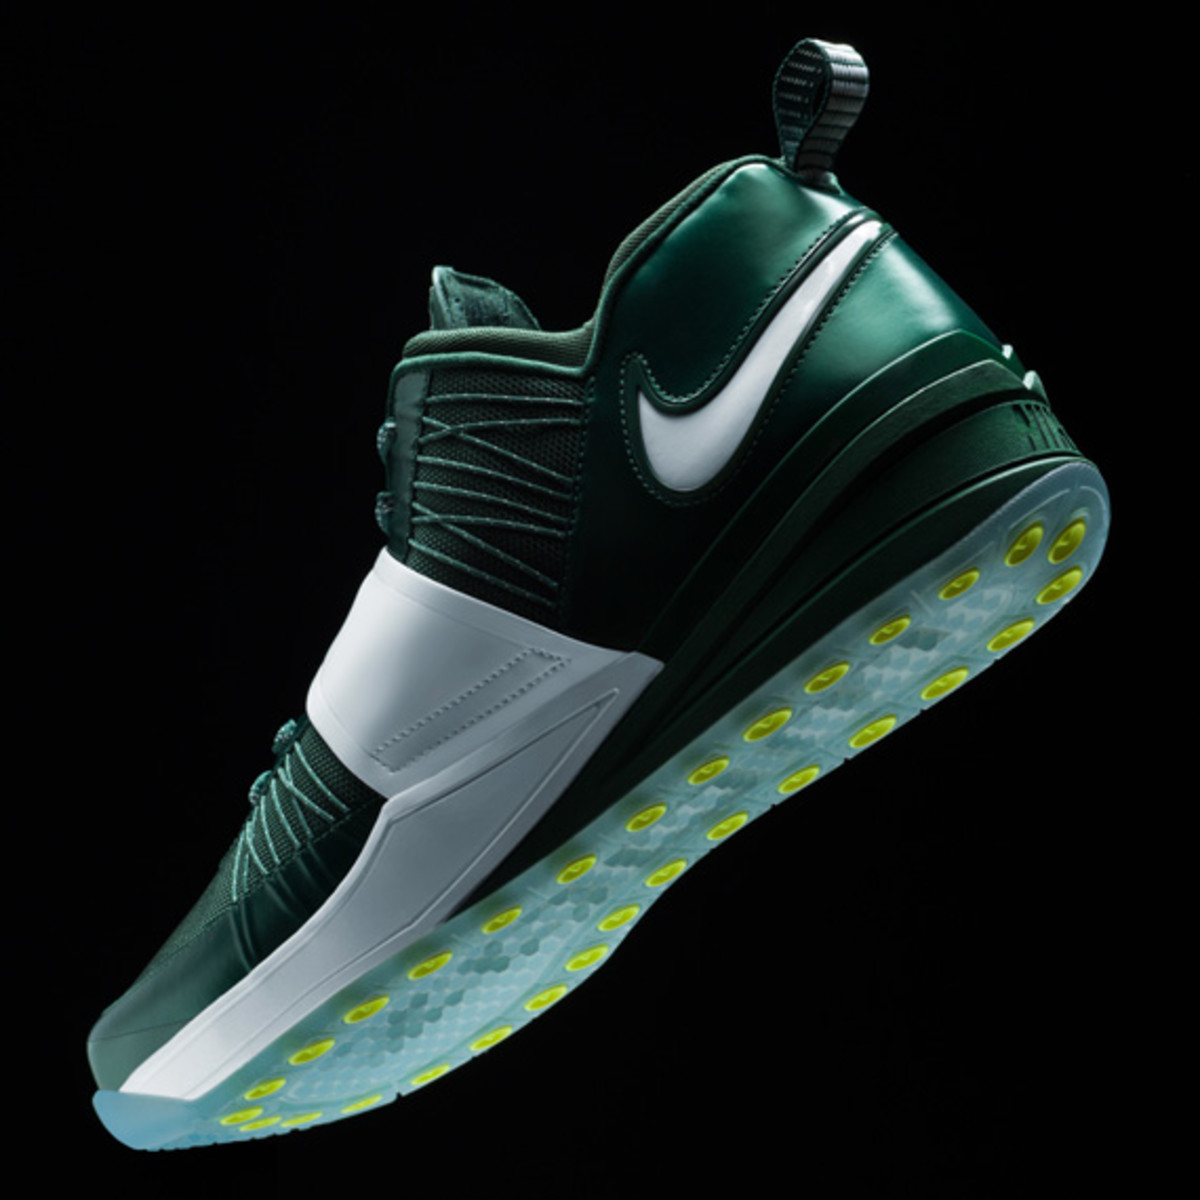 darrelle-revis-nike-zoom-revis-officially-unveiled-09